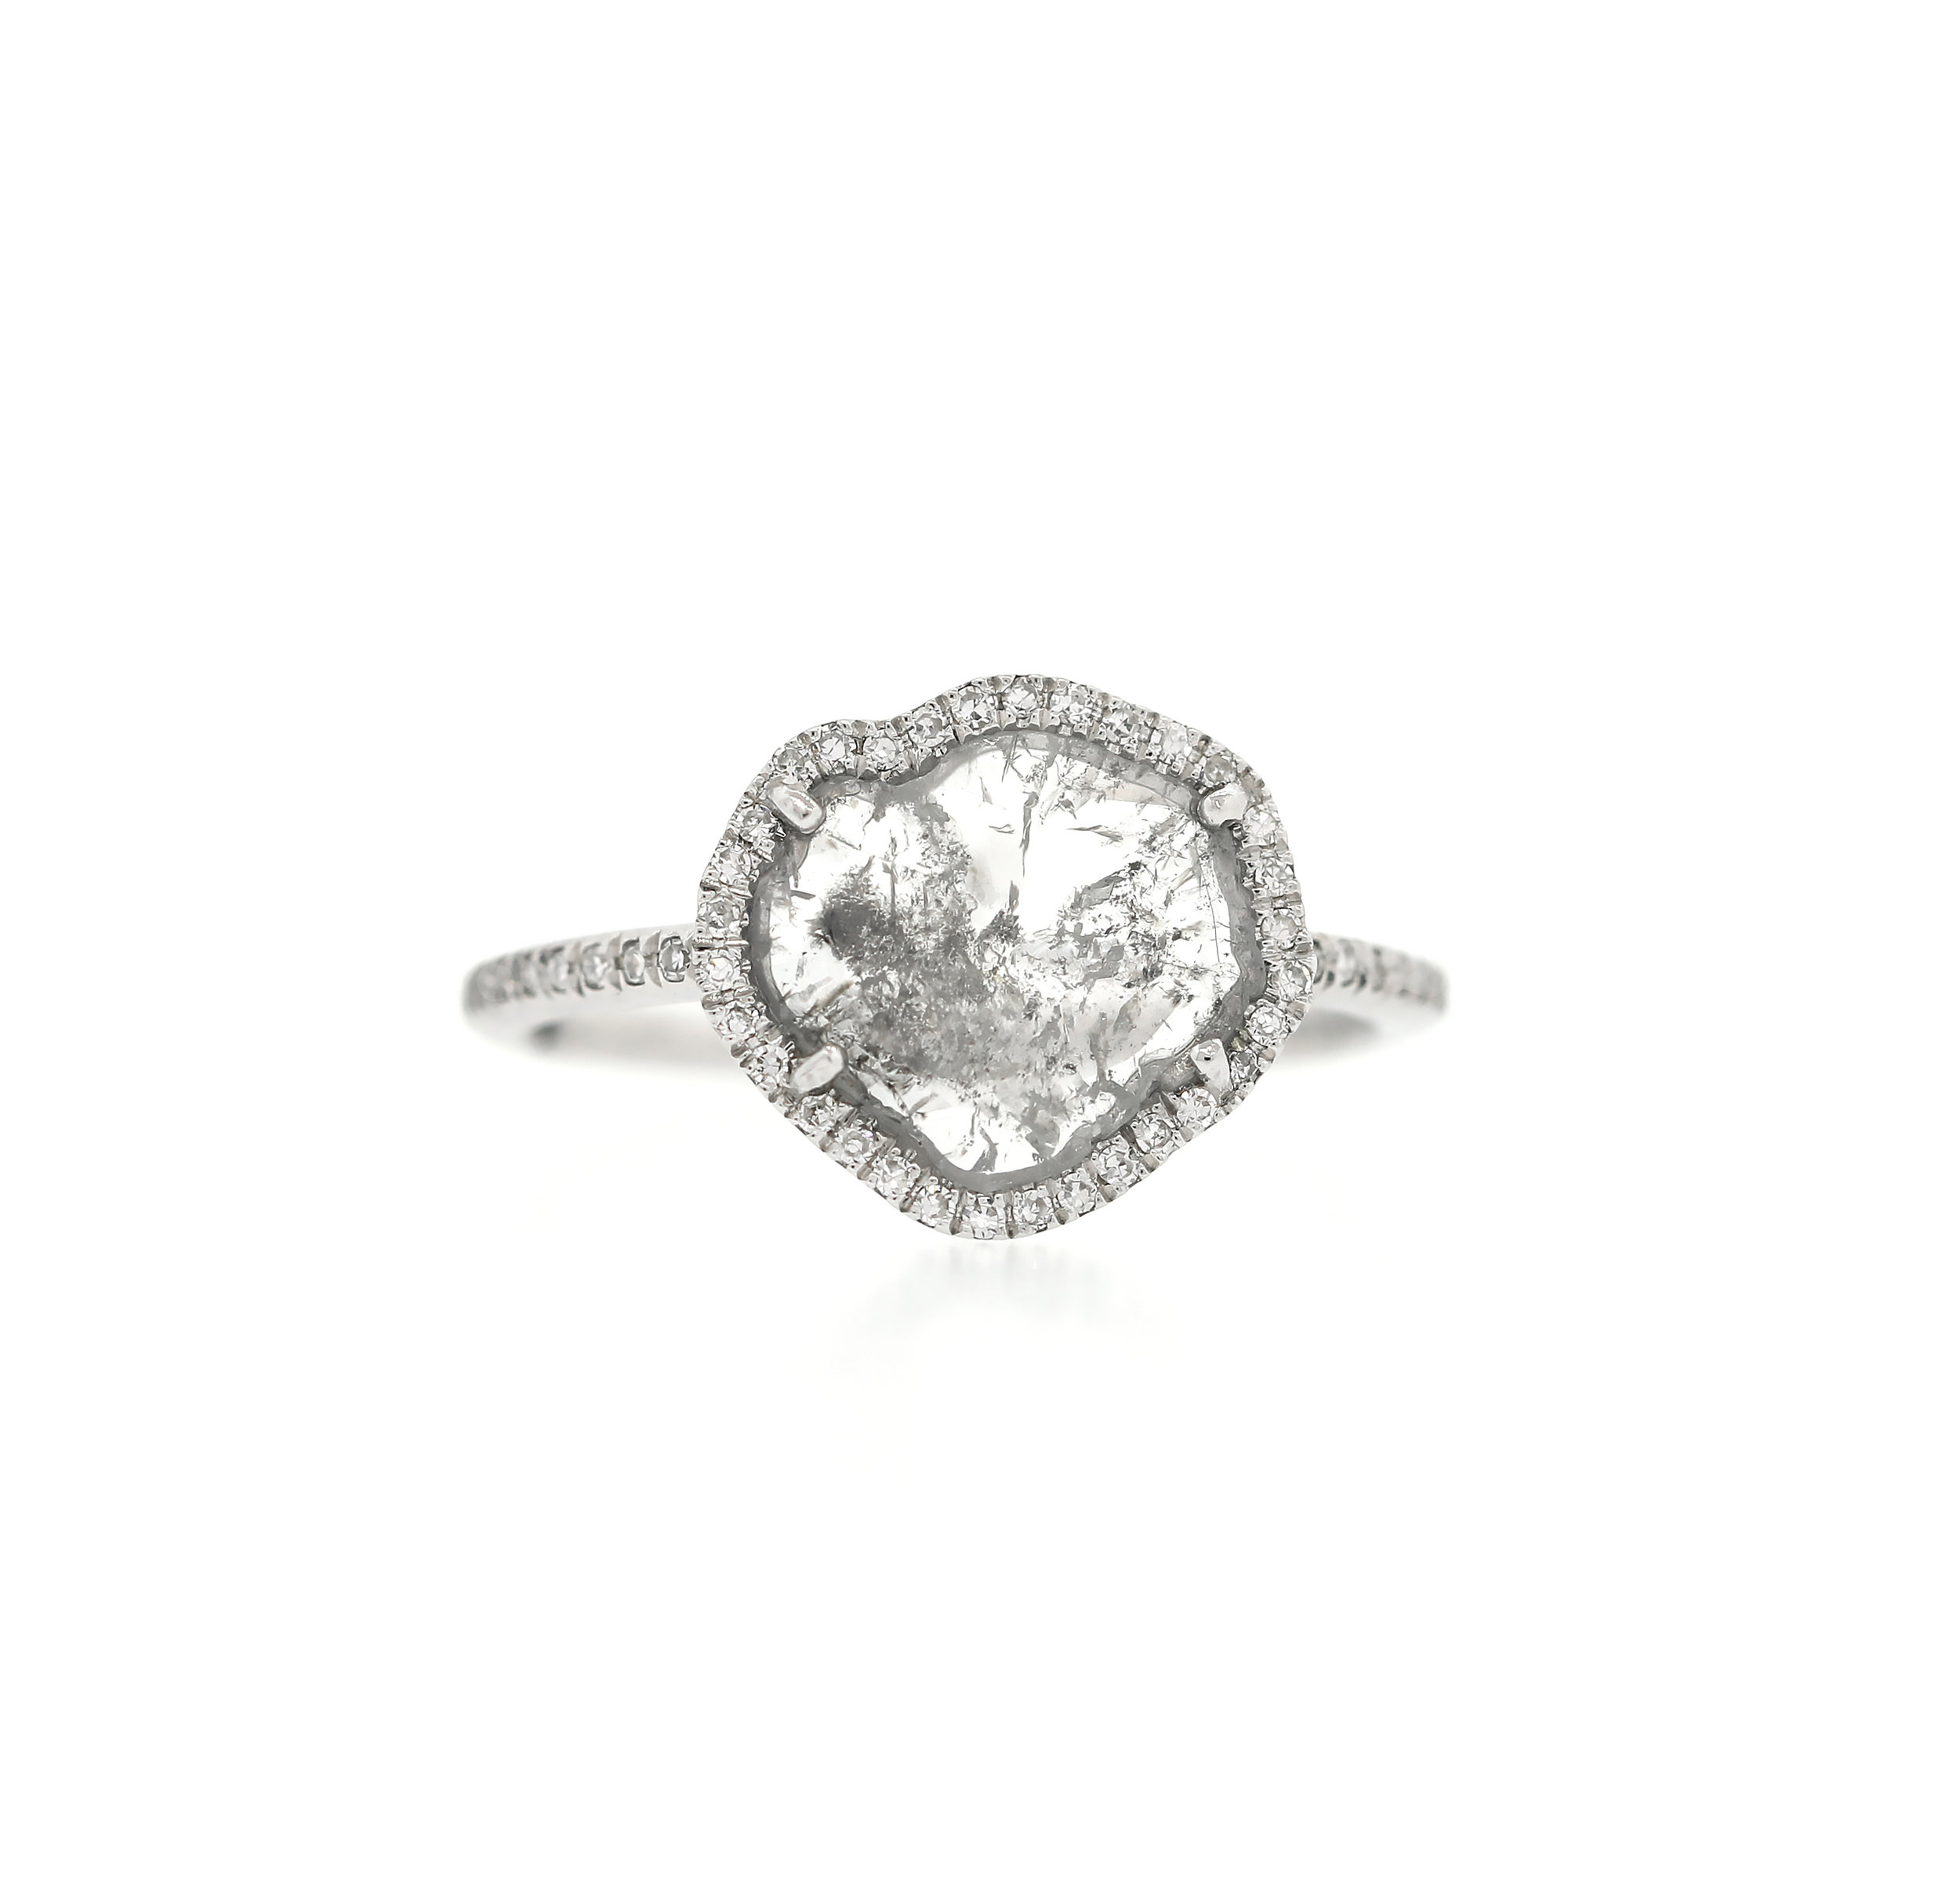 Large Diamond Slice Ring WG.jpg